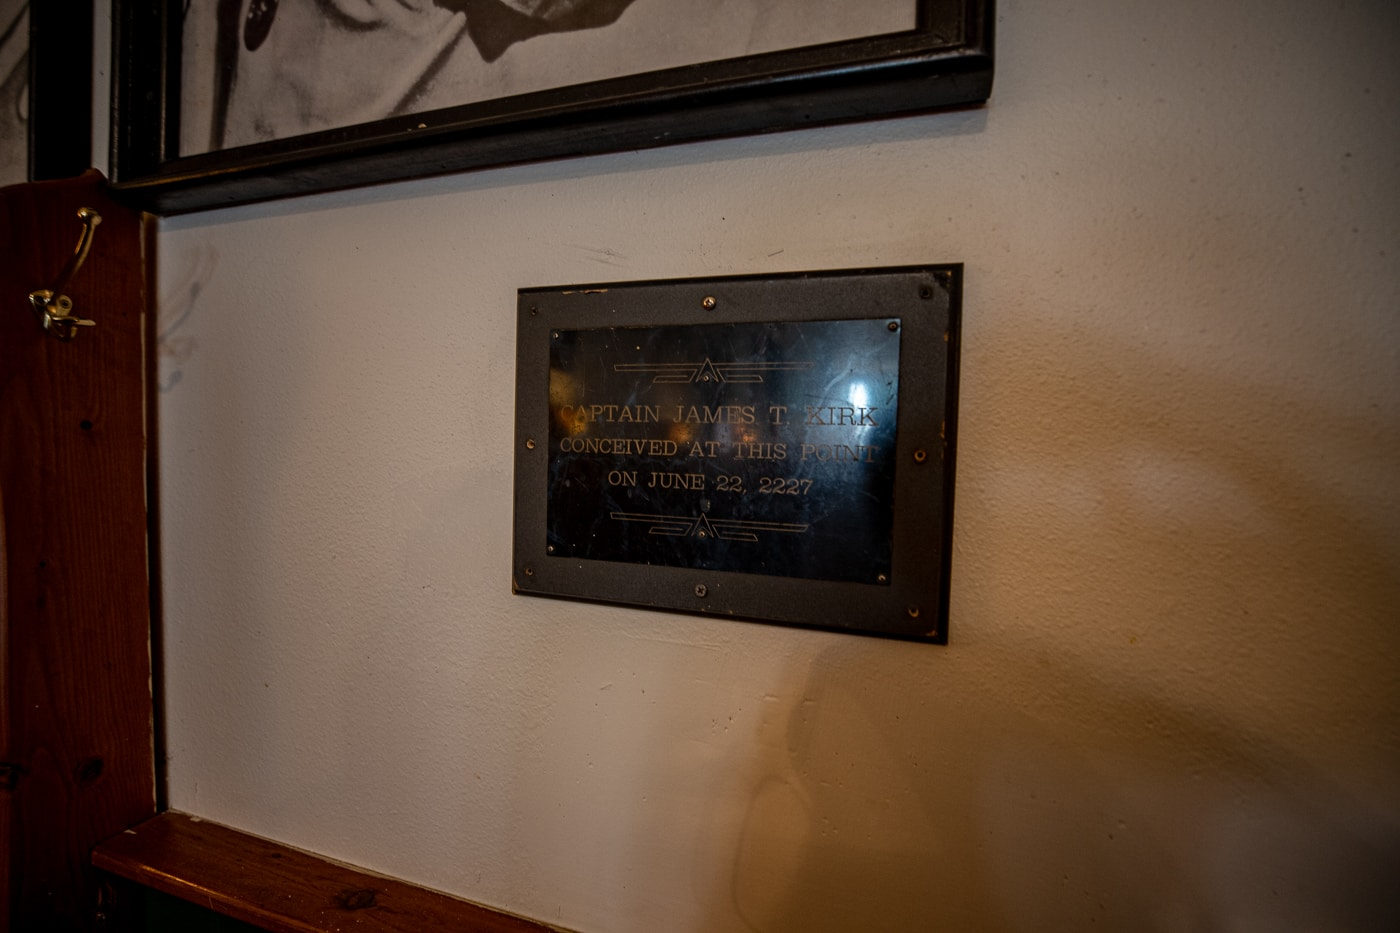 Captain Kirk Conceived Here Plaque at Murphy's Bar and Grill in Riverside, Iowa, the future birthplace of Captain James T. Kirk